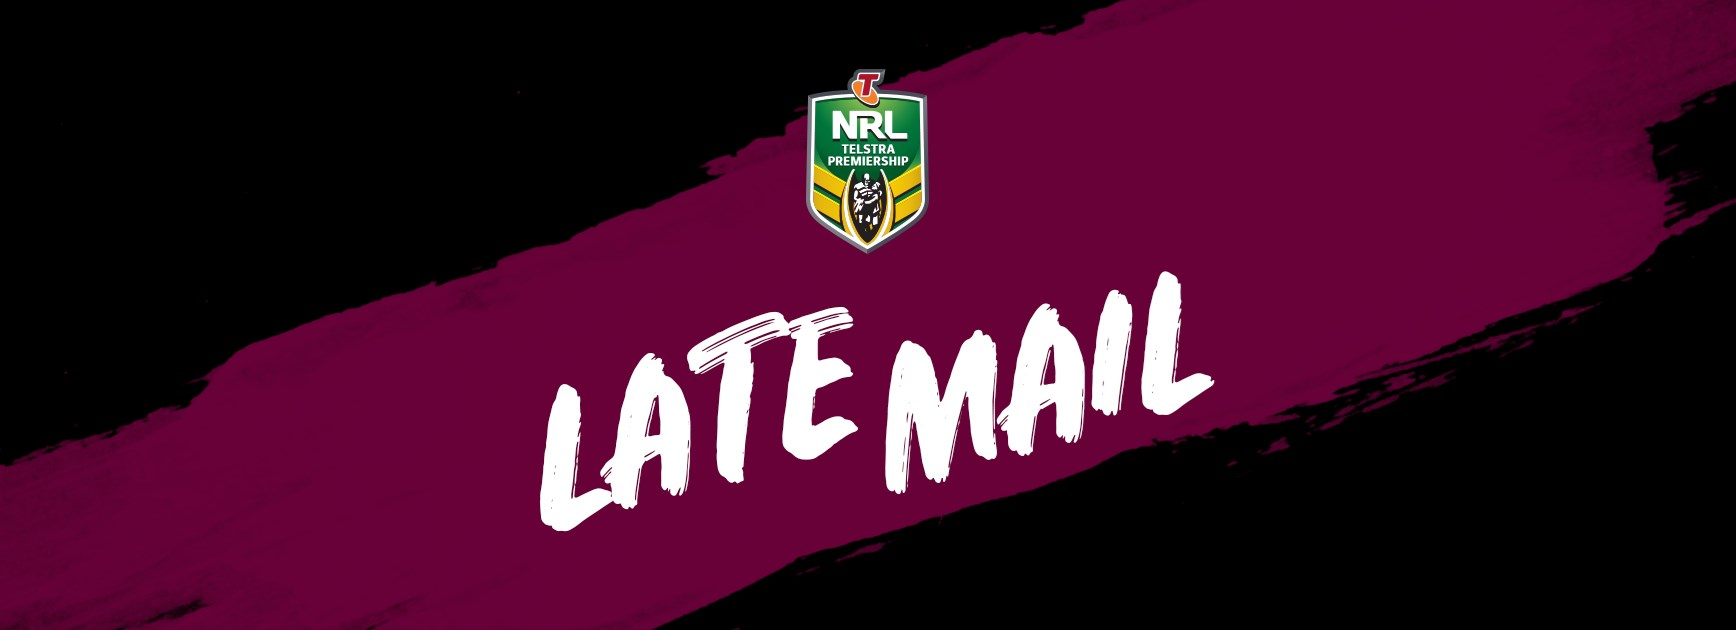 NRL Late Mail - Round 4